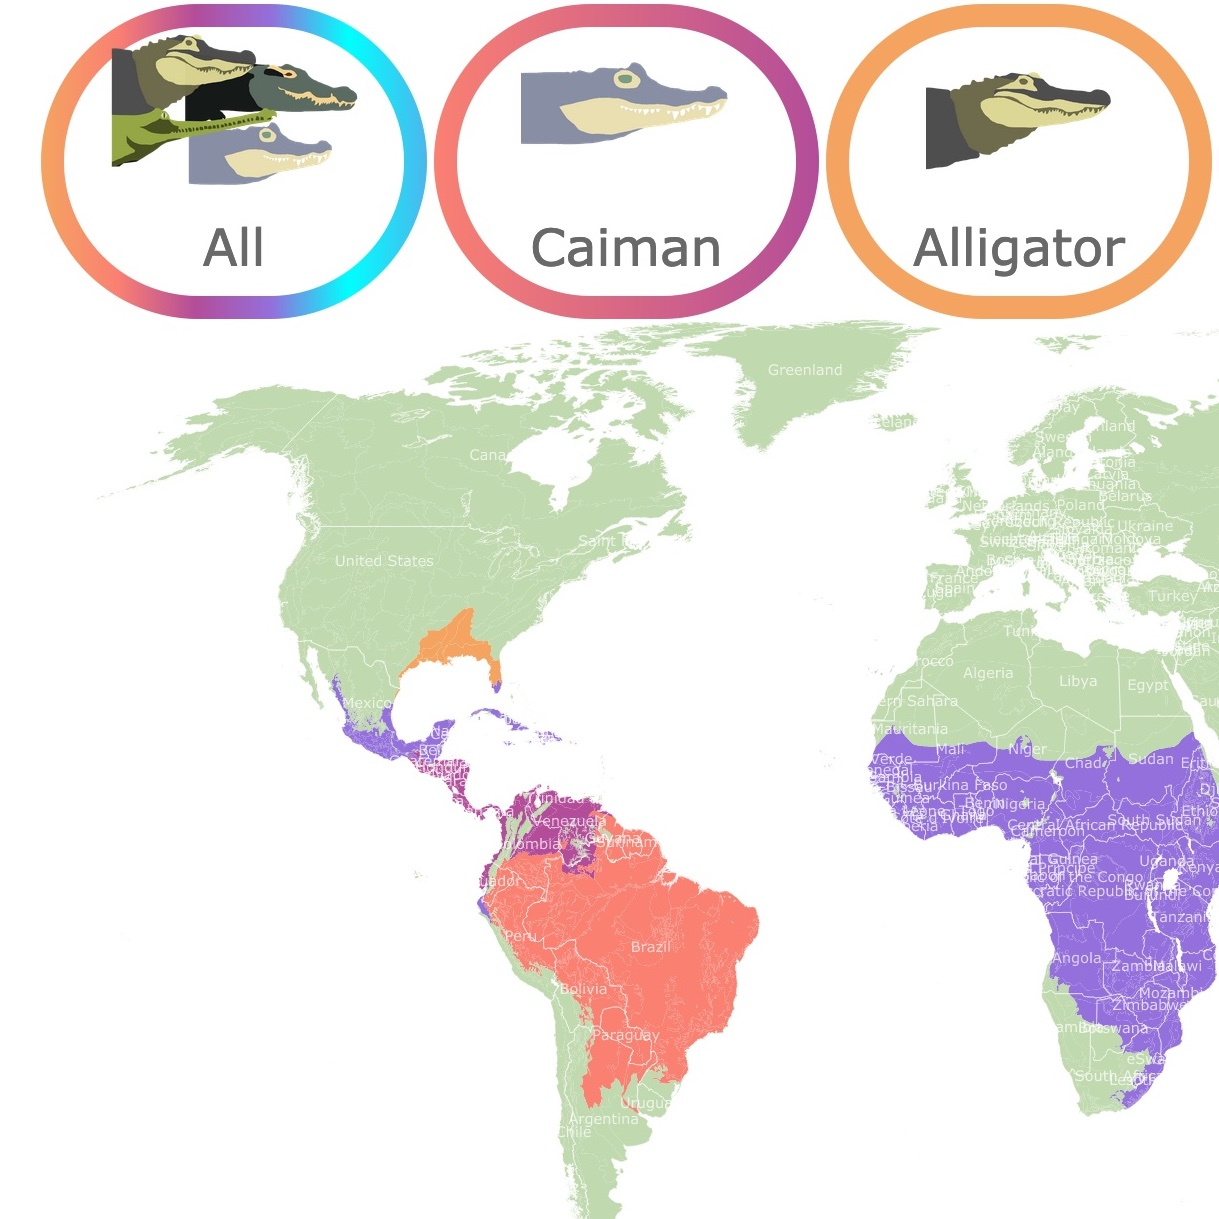 Map of crocodile groups around the World